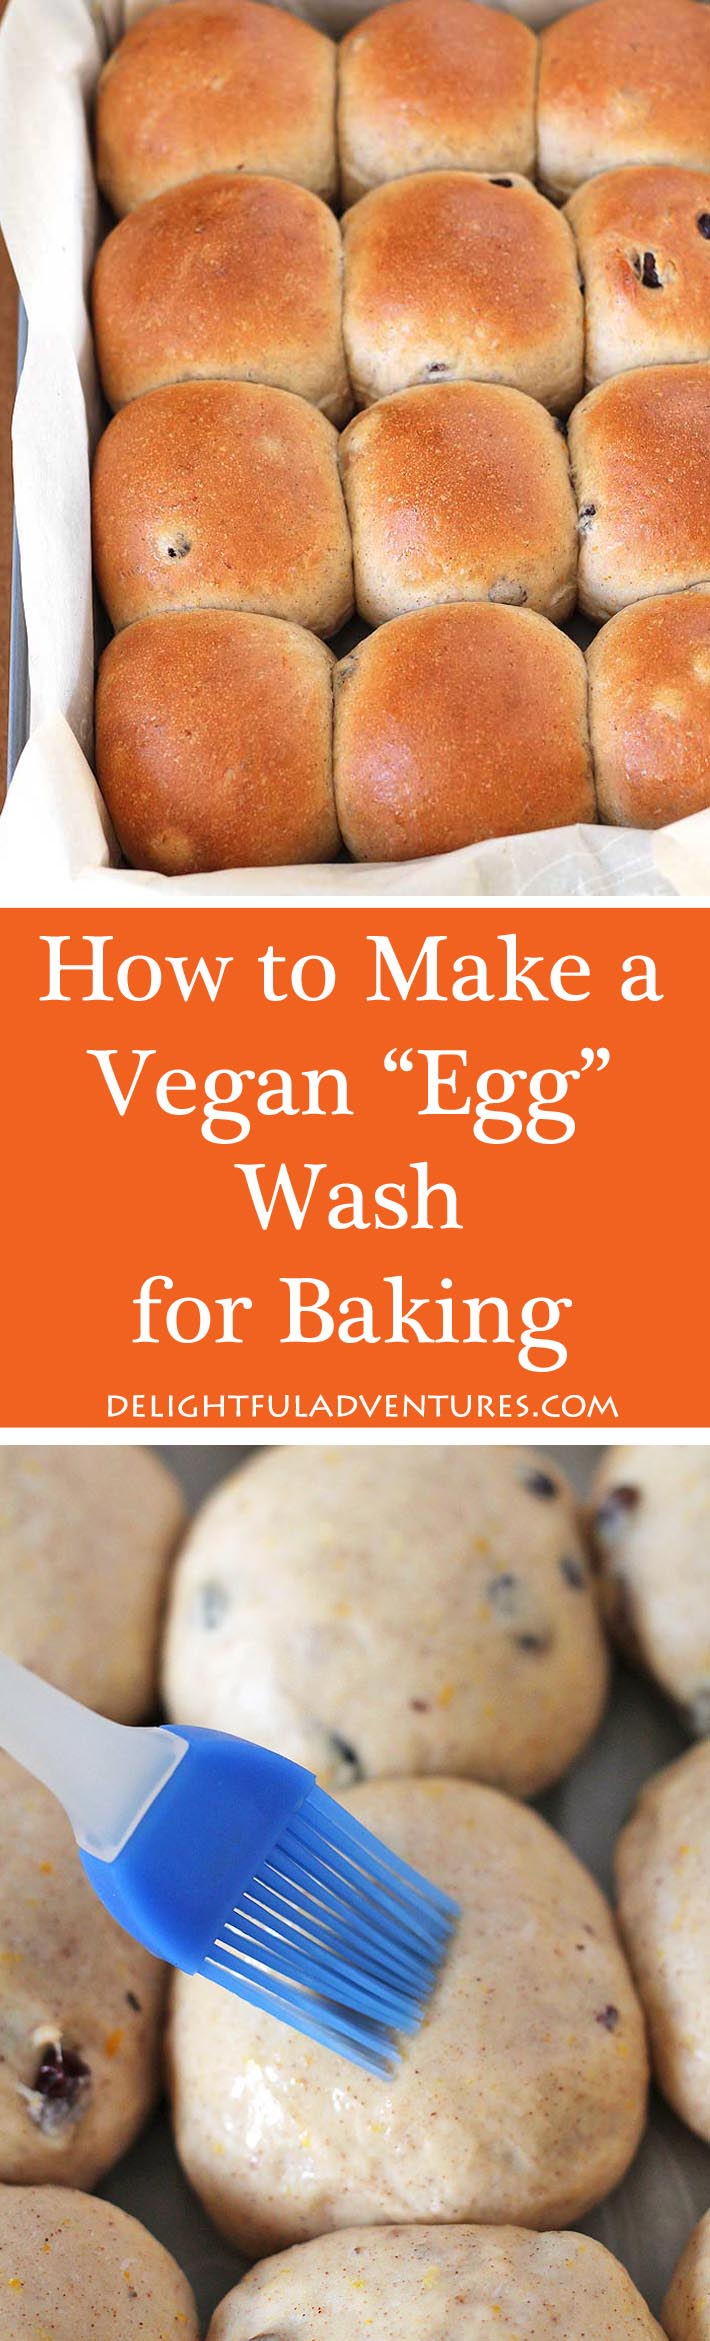 Wondering how to make a vegan egg wash for baking? This post will give you a few ways you can make egg wash substitutes for your sweet and savoury baked goods. #veganeggwash #veganbaking #vegansubstitutes